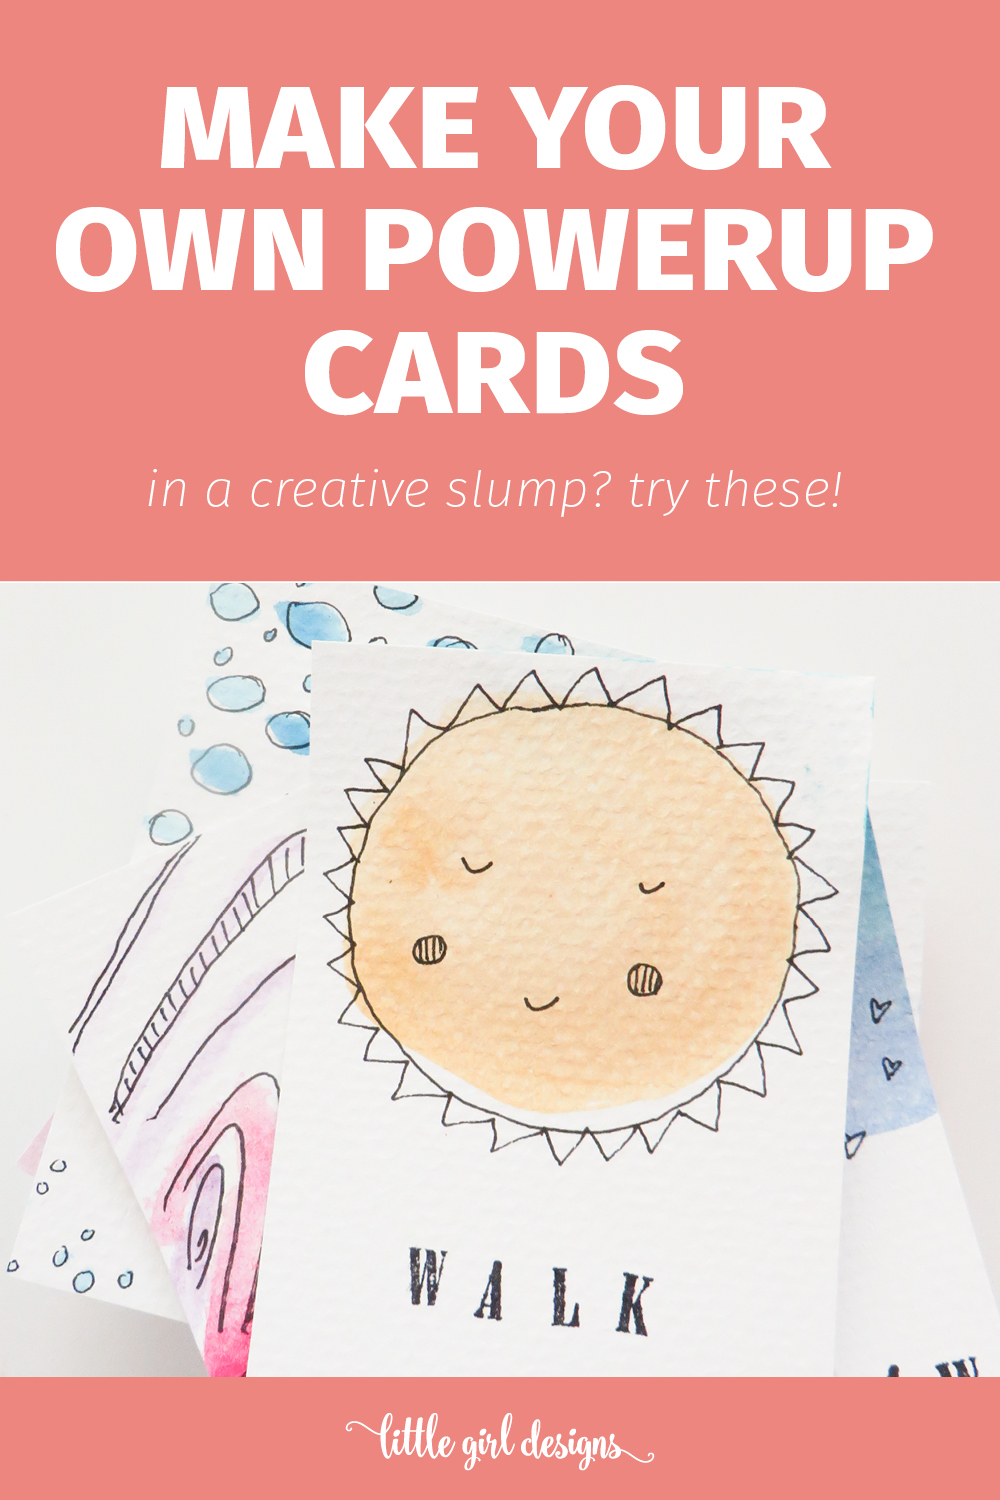 I need these in my life! This is a simple tutorial on how to make artist powerup cards—you know, just like the powerups you get when you play video games! These cards will help you get out of the creative doldrums and can be personalized to no end. Where have these been all my life?! :)